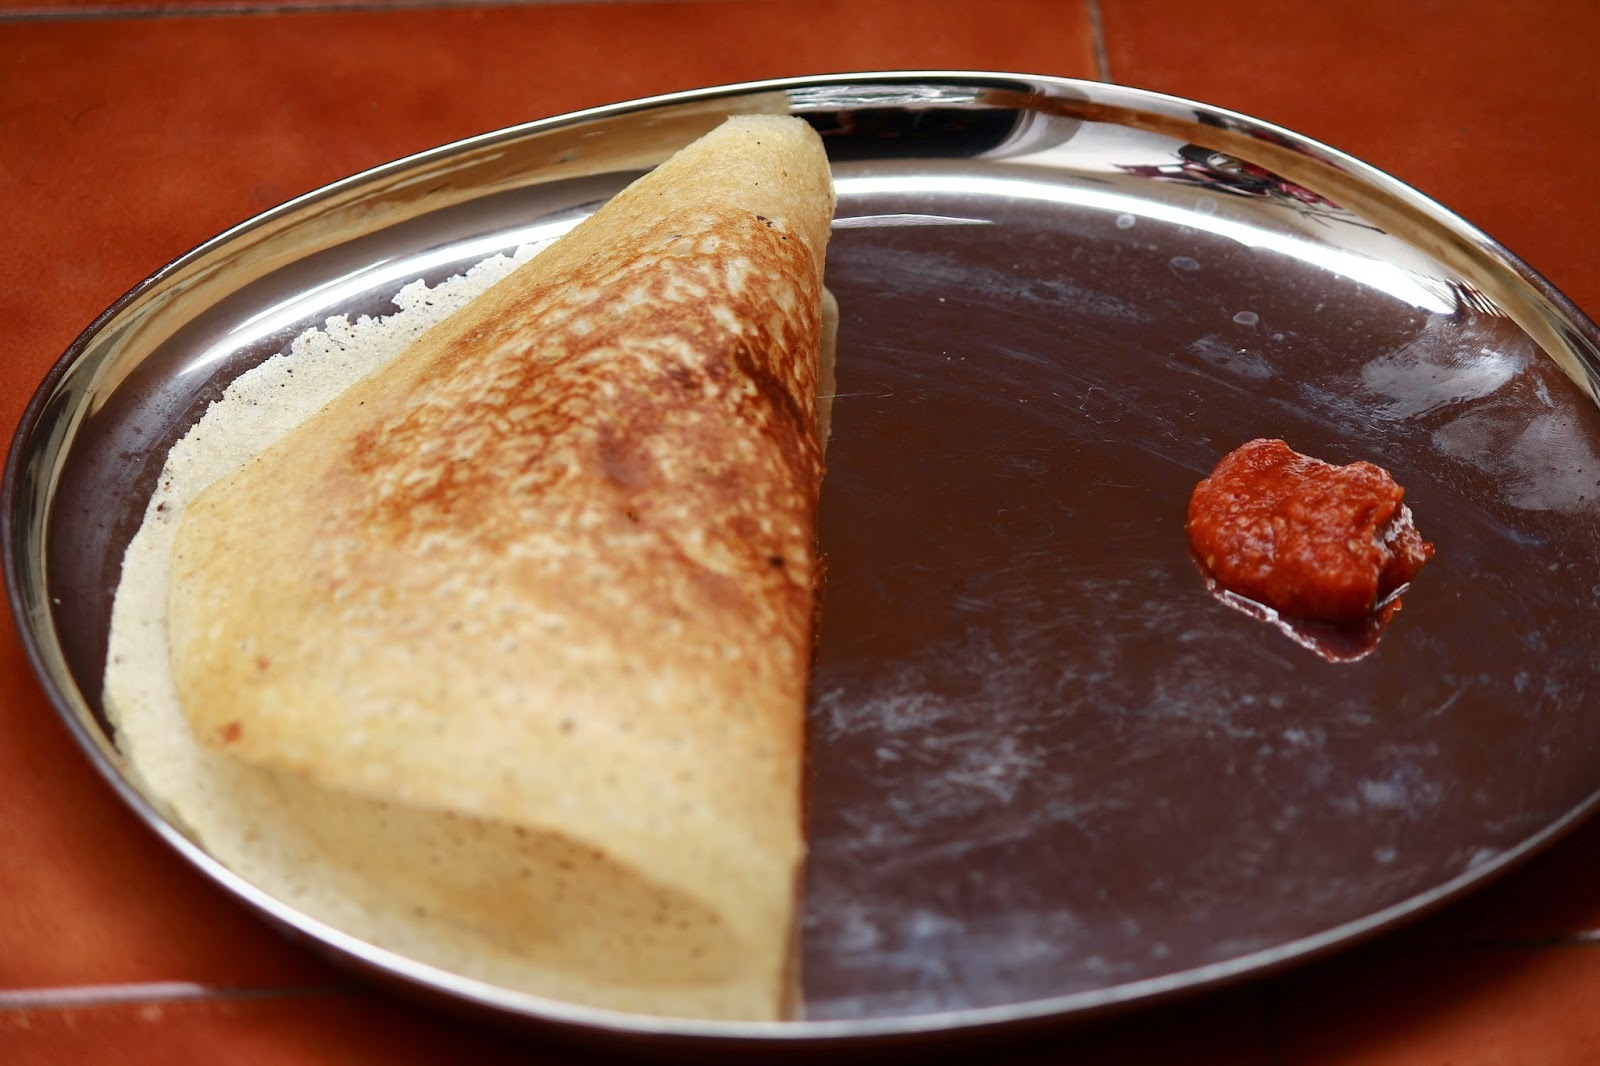 Dosa recipe - How to make crispy dosa - South Indian breakfast recipes - Indian kitchen basics